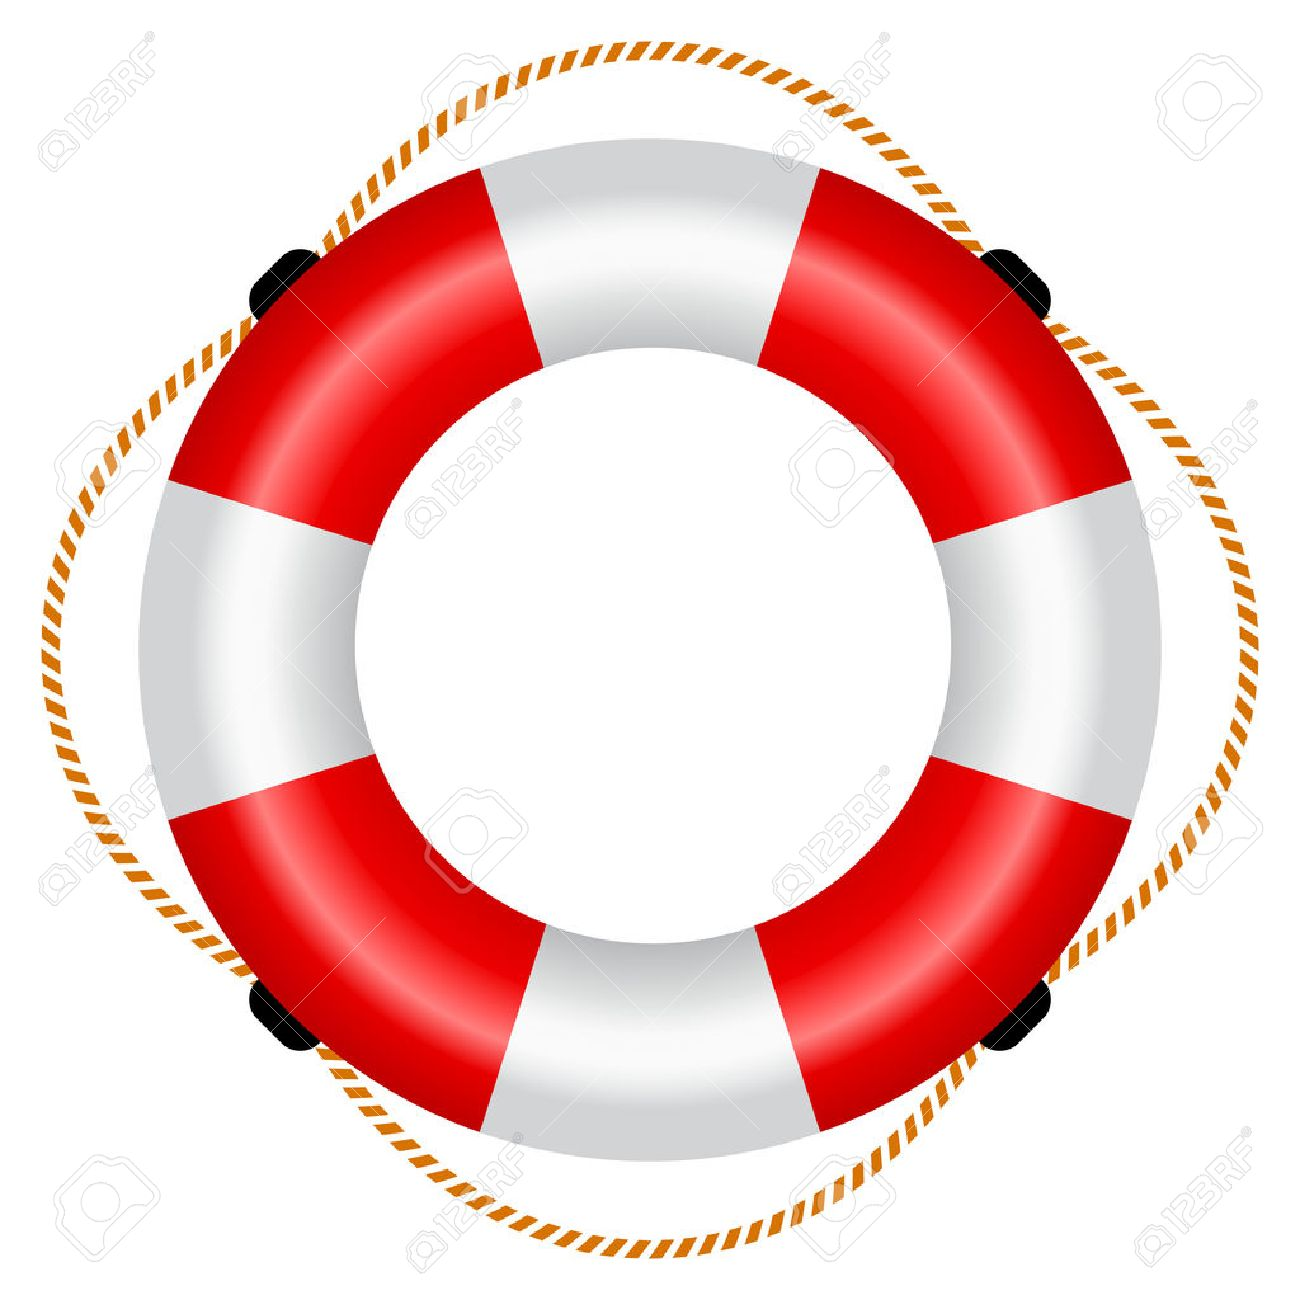 4 172 life preserver stock vector illustration and royalty free life rh 123rf com free clipart life preserver life preserver clipart free